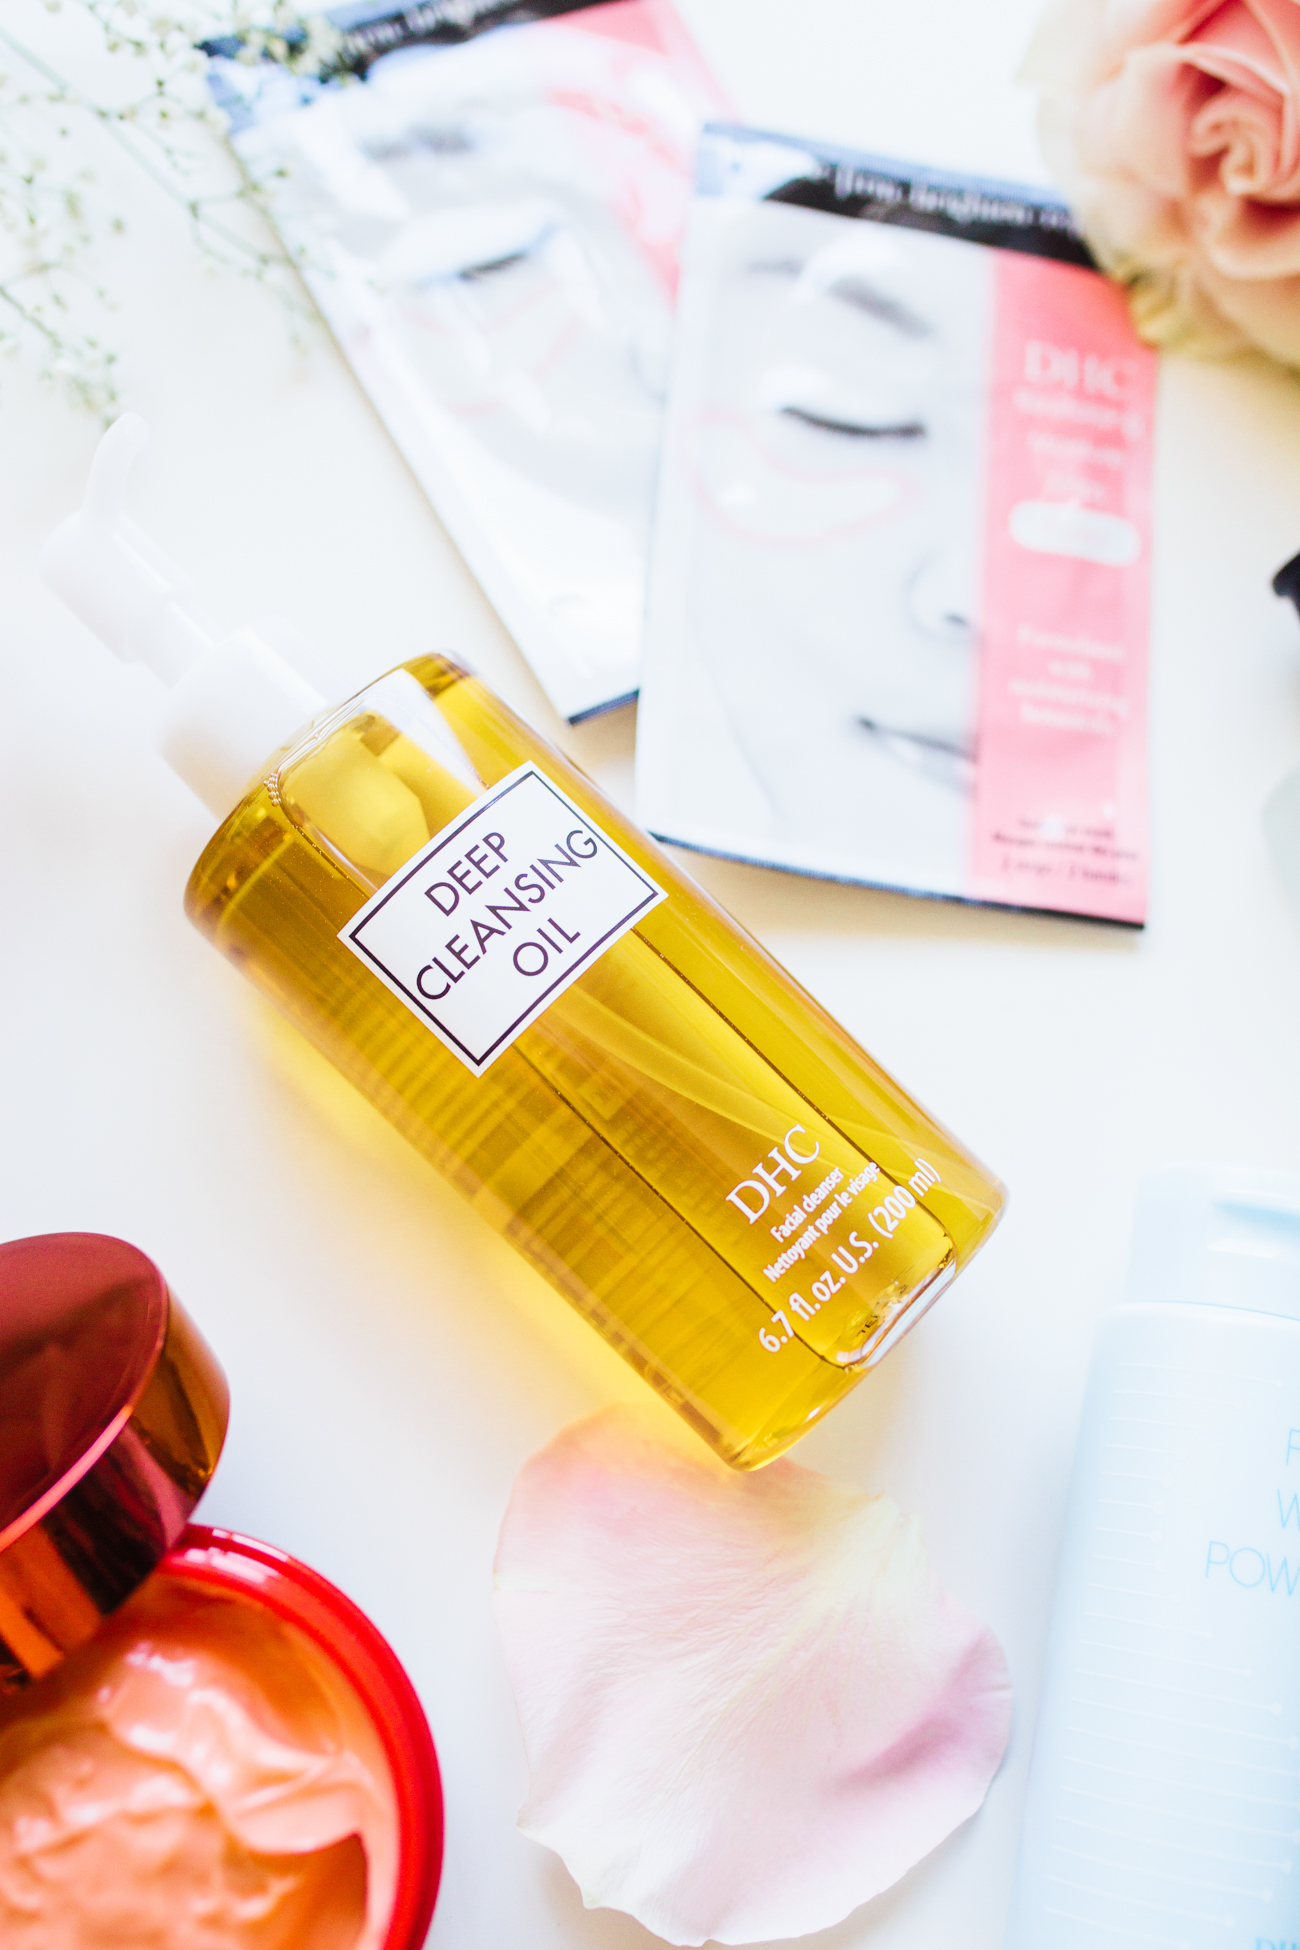 DHC Skin Care